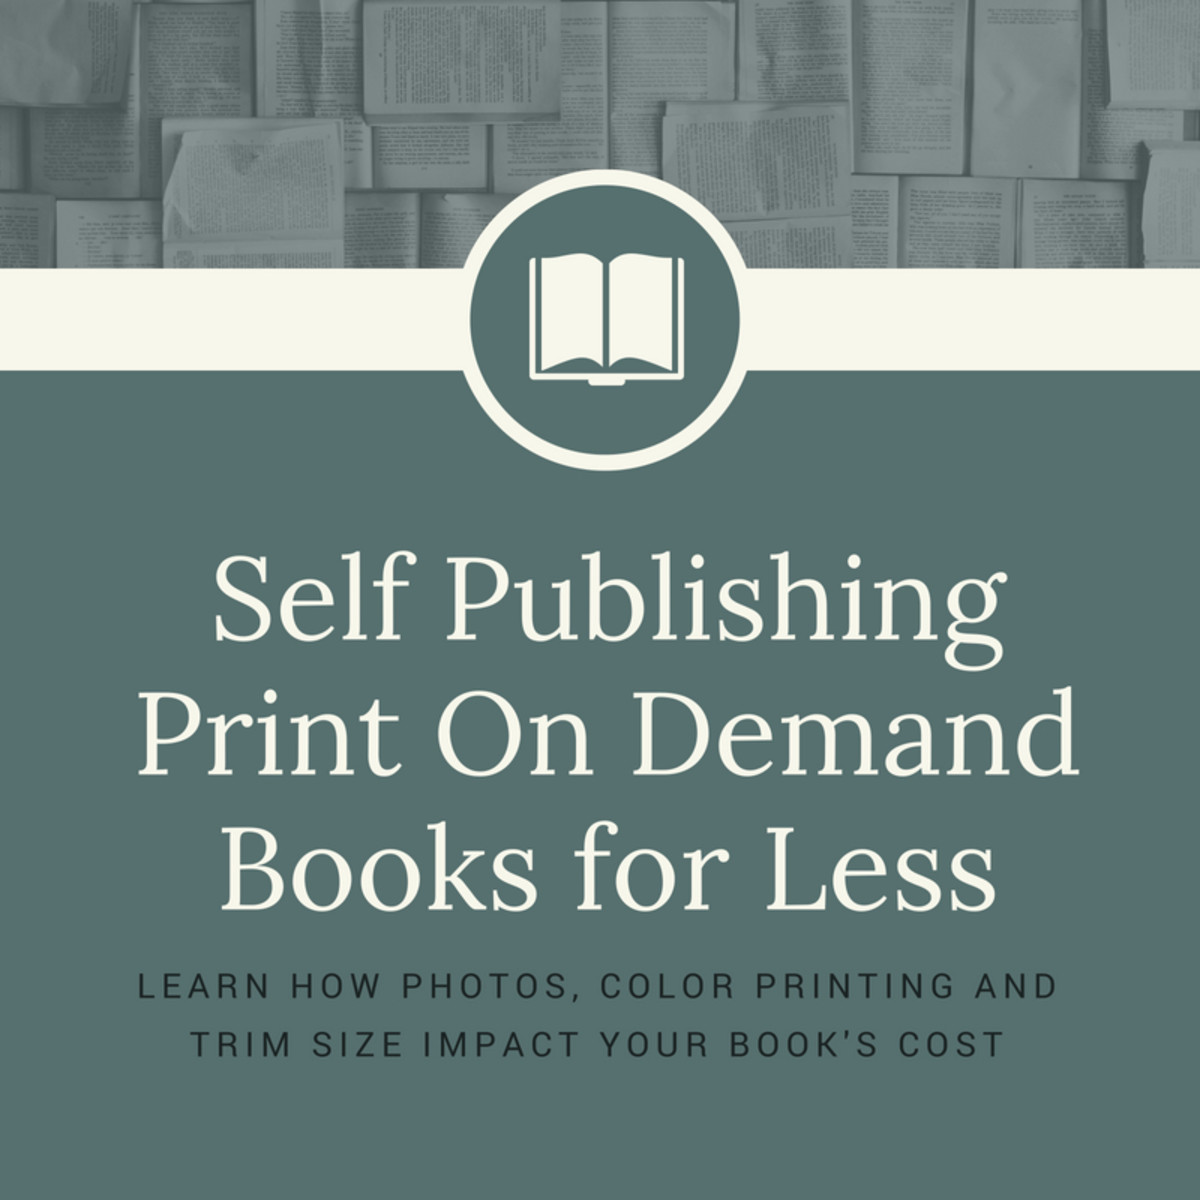 Self Publishing Print-on-Demand Books for Less